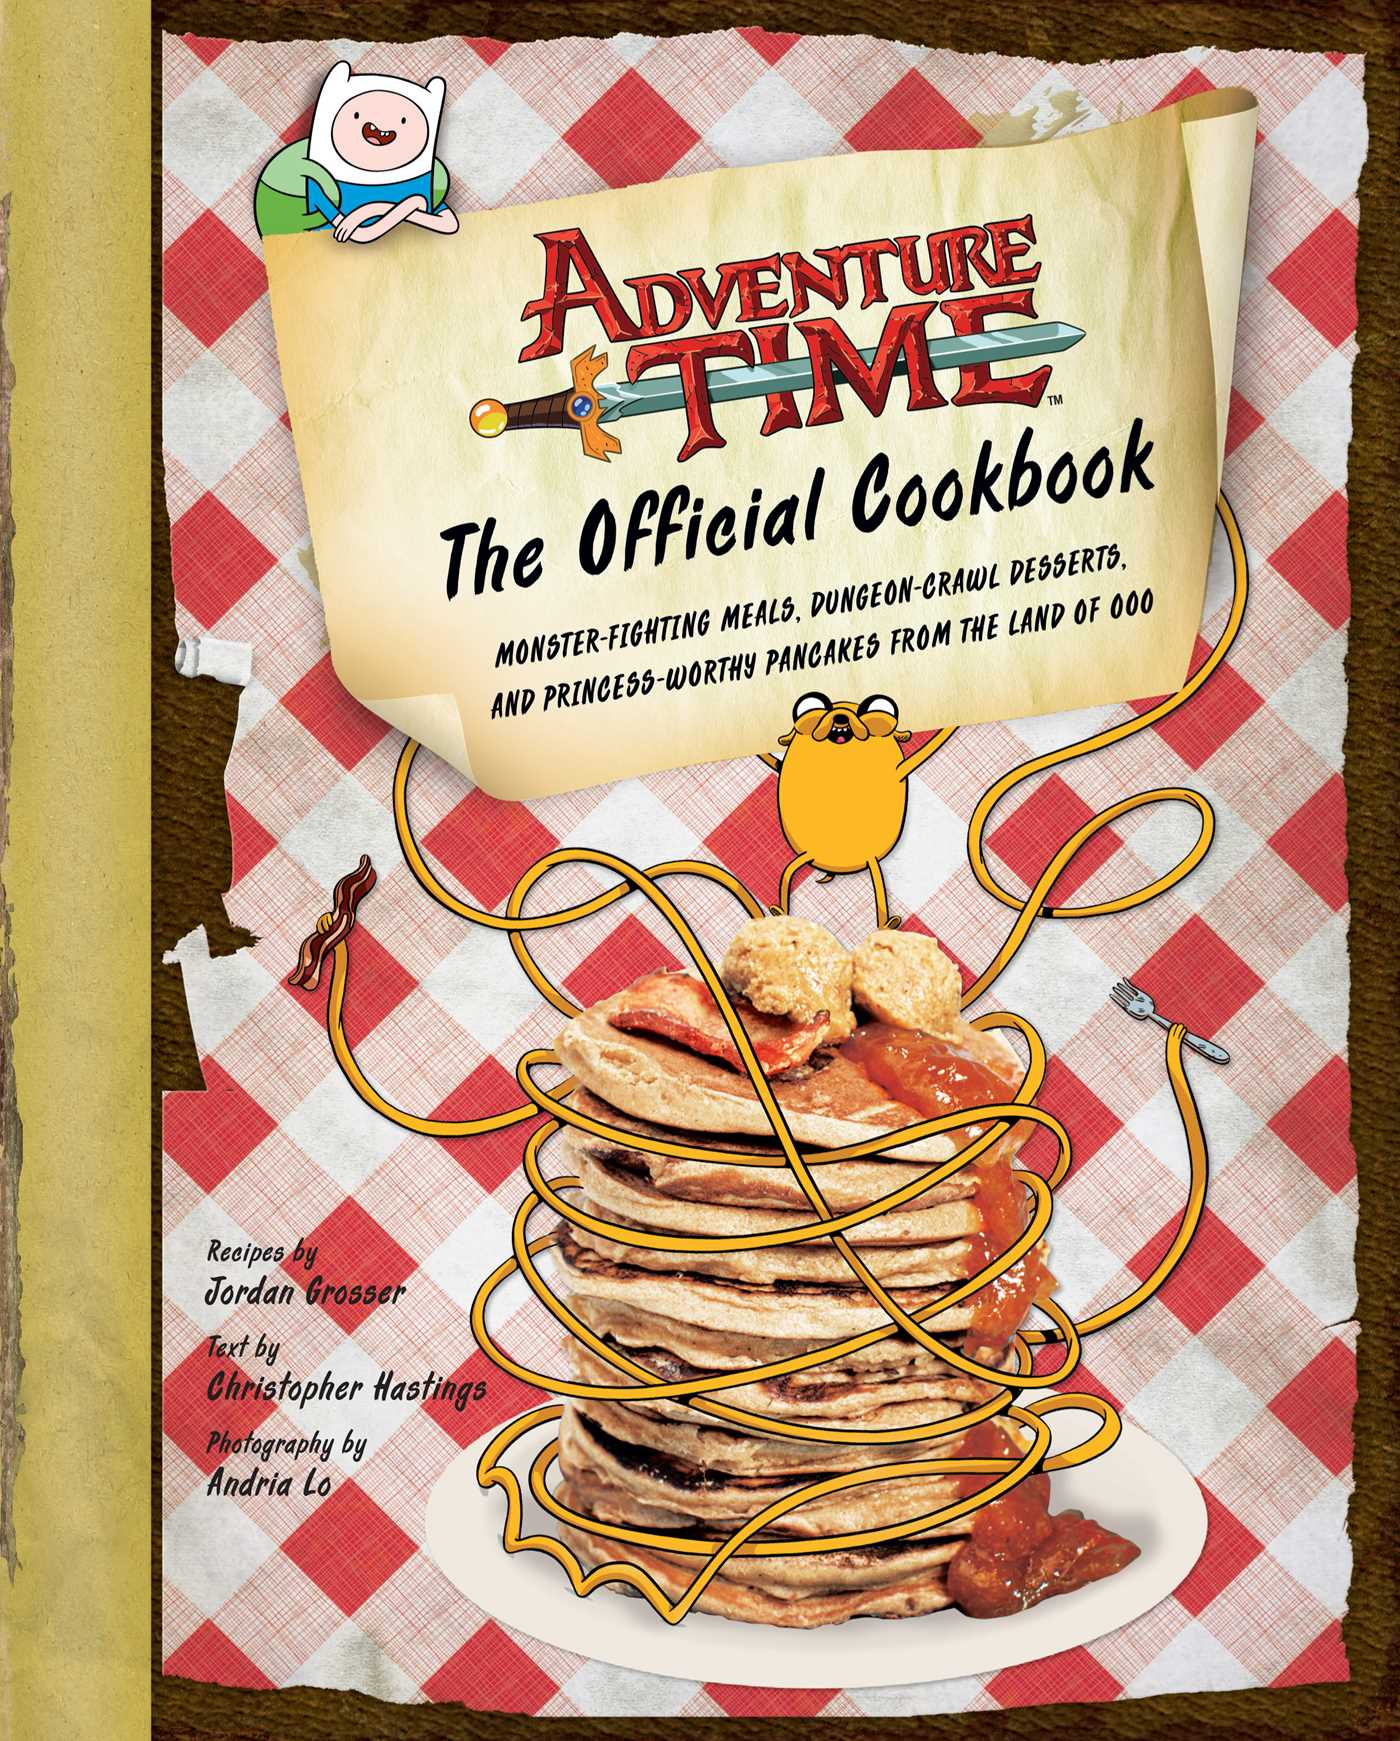 Cook Book Cover Quote : Adventure time the official cookbook book by jordan